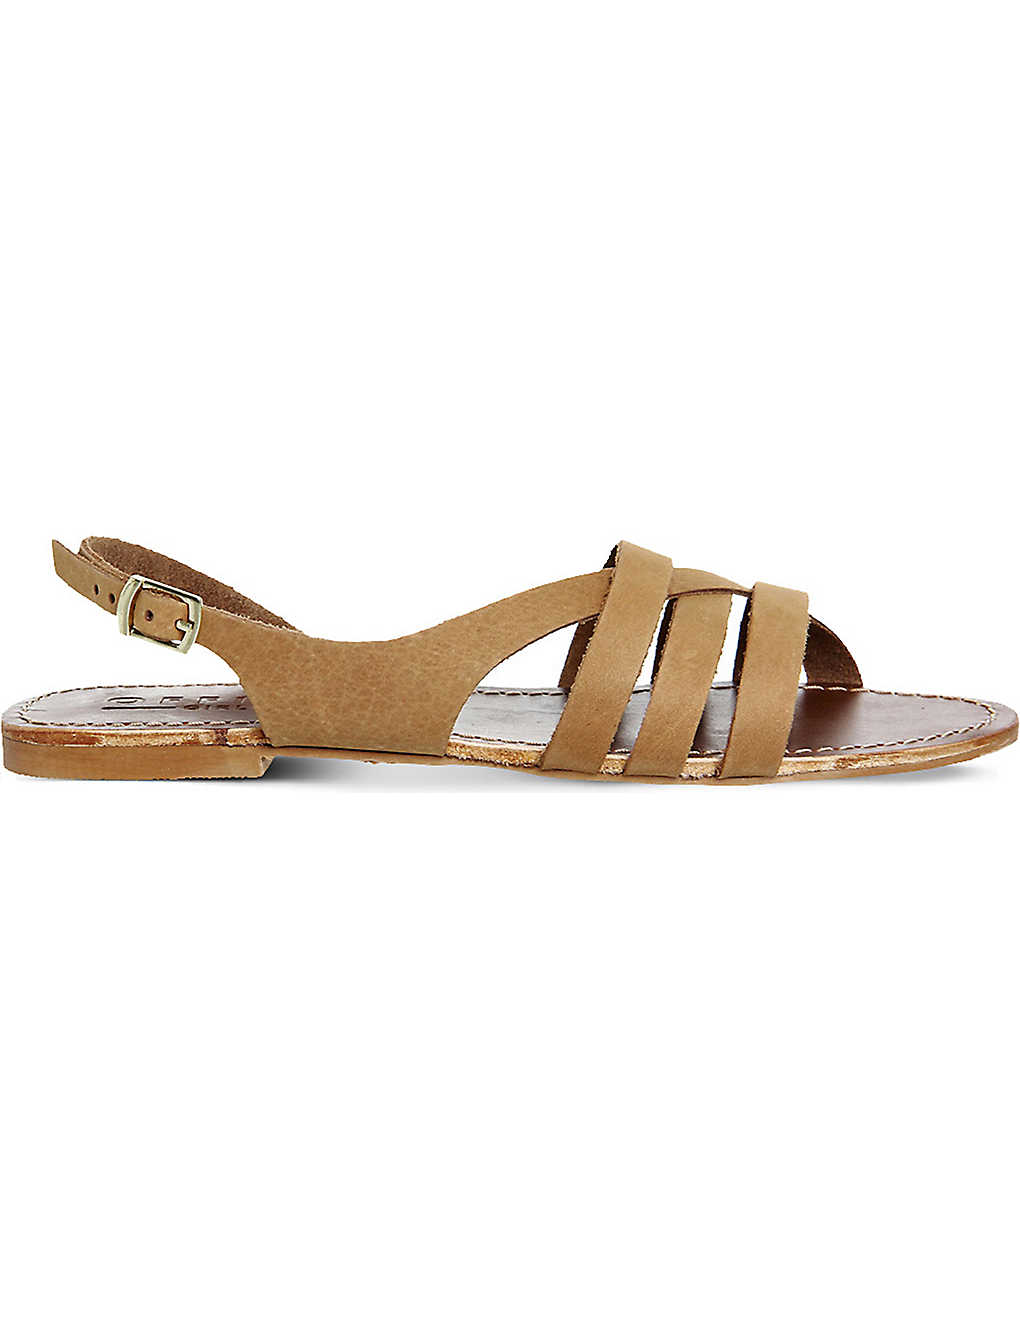 367da6d78 OFFICE - Bamboo leather strappy flat sandals | Selfridges.com